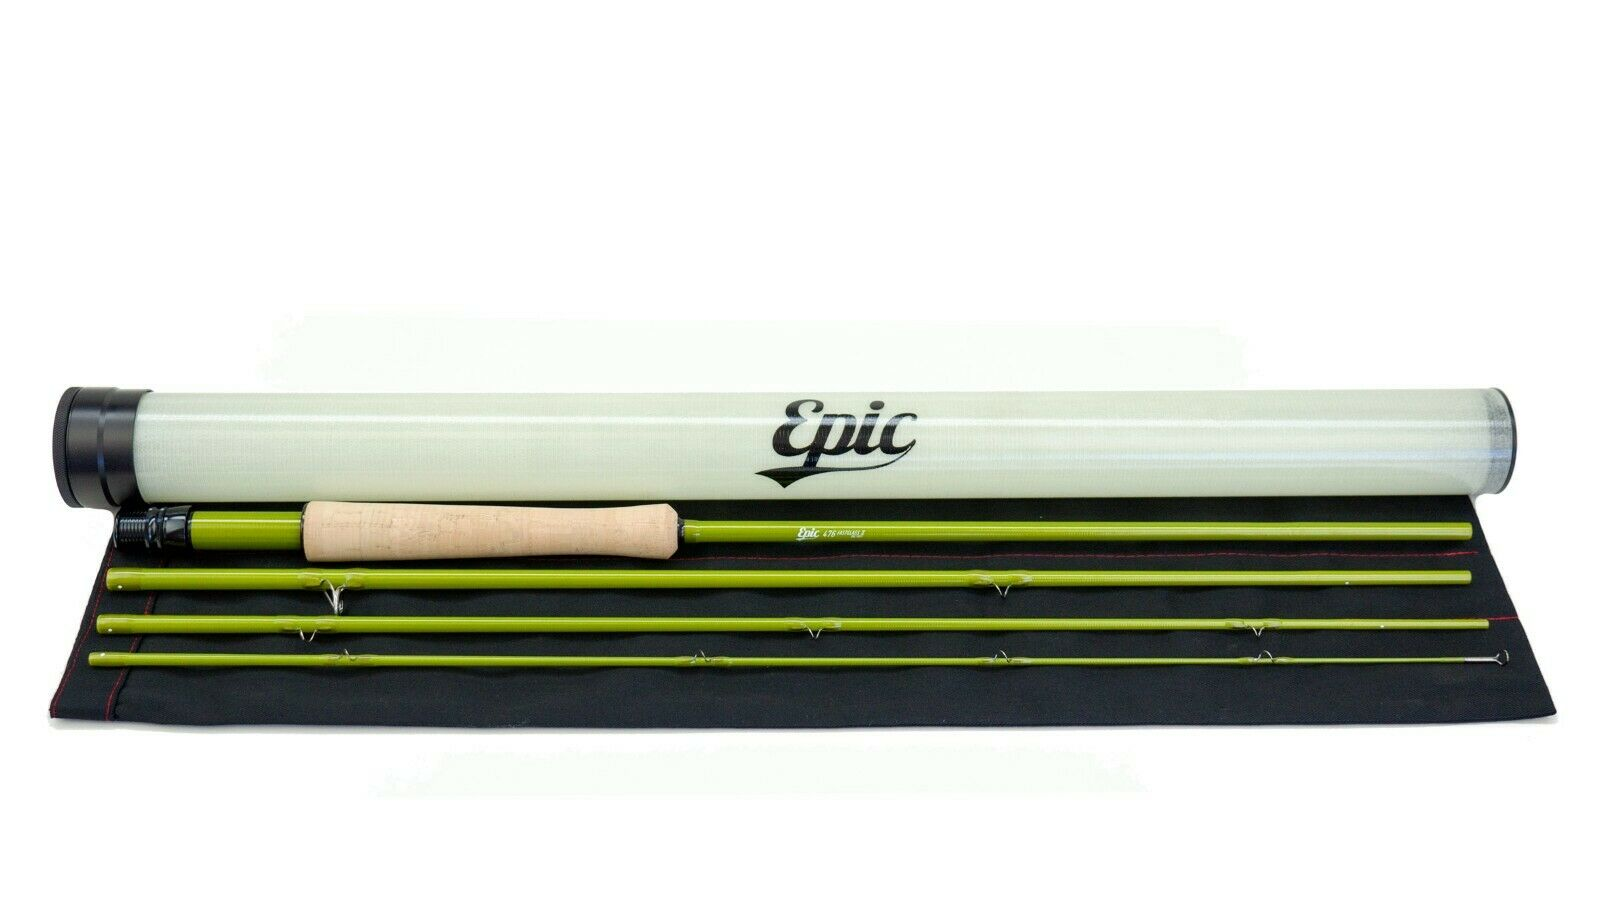 The epic Standard by swift NZ - 476 fastglass II flyrod-moscas vara - 2,28m  4